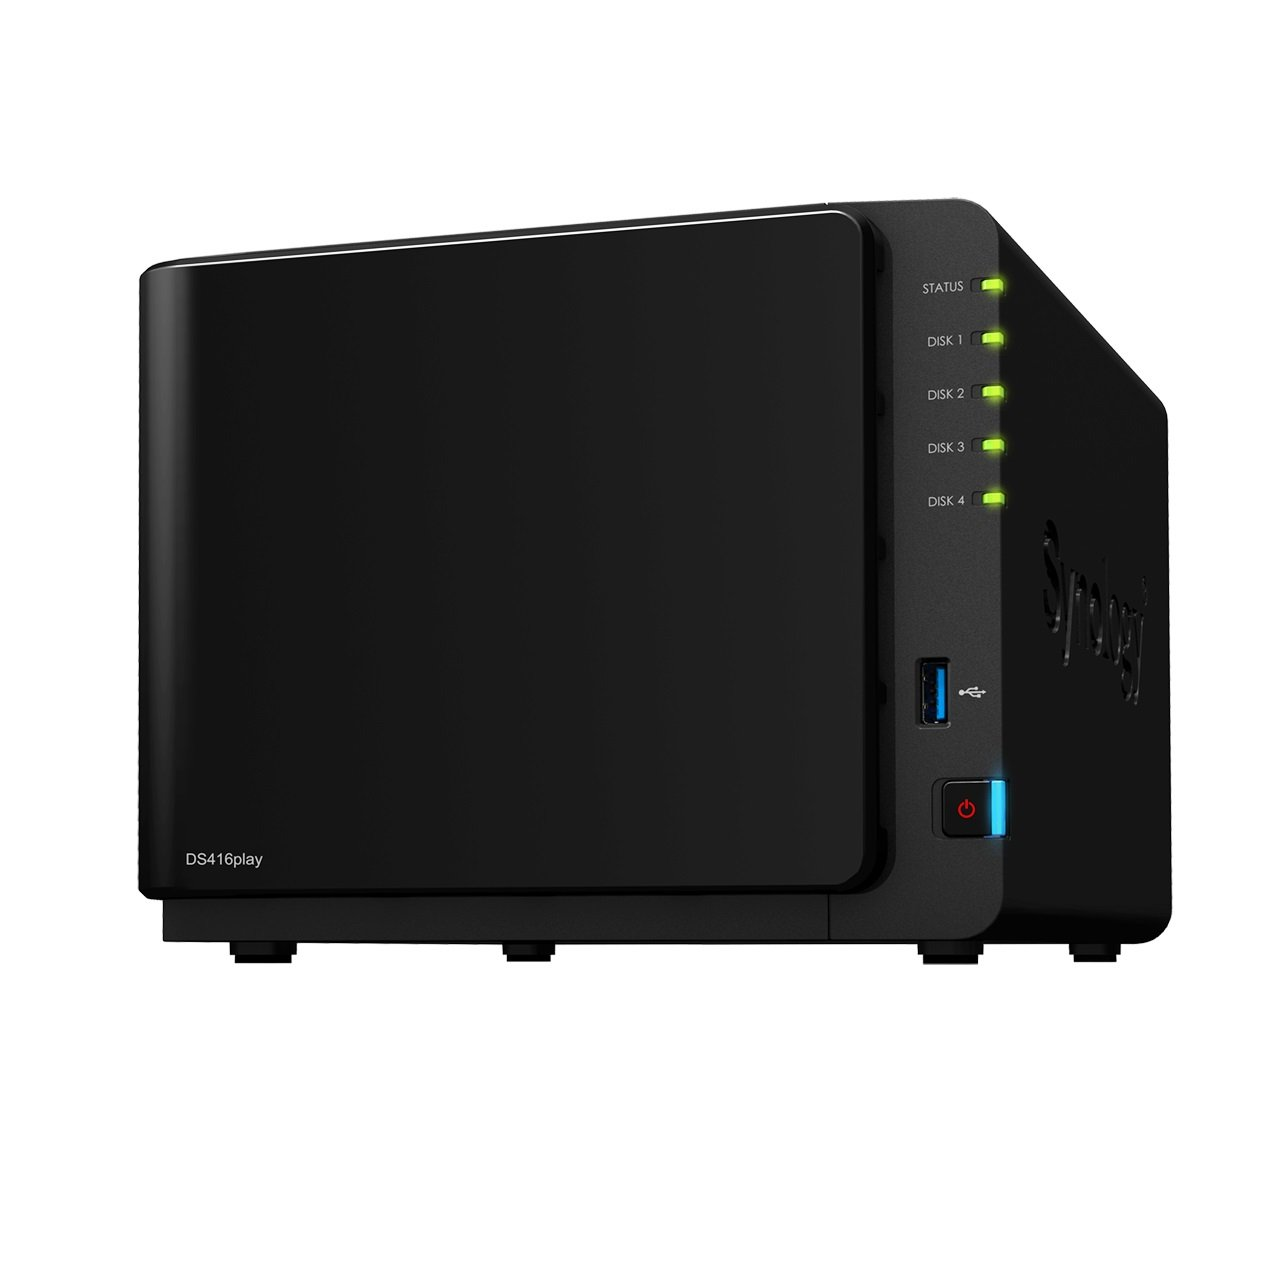 Synology Serie Value DS416 - Dispositivo de almacenamiento en red (1 GB, 3 puertos USB 3.0, 2 puertos LAN Gigabit),...